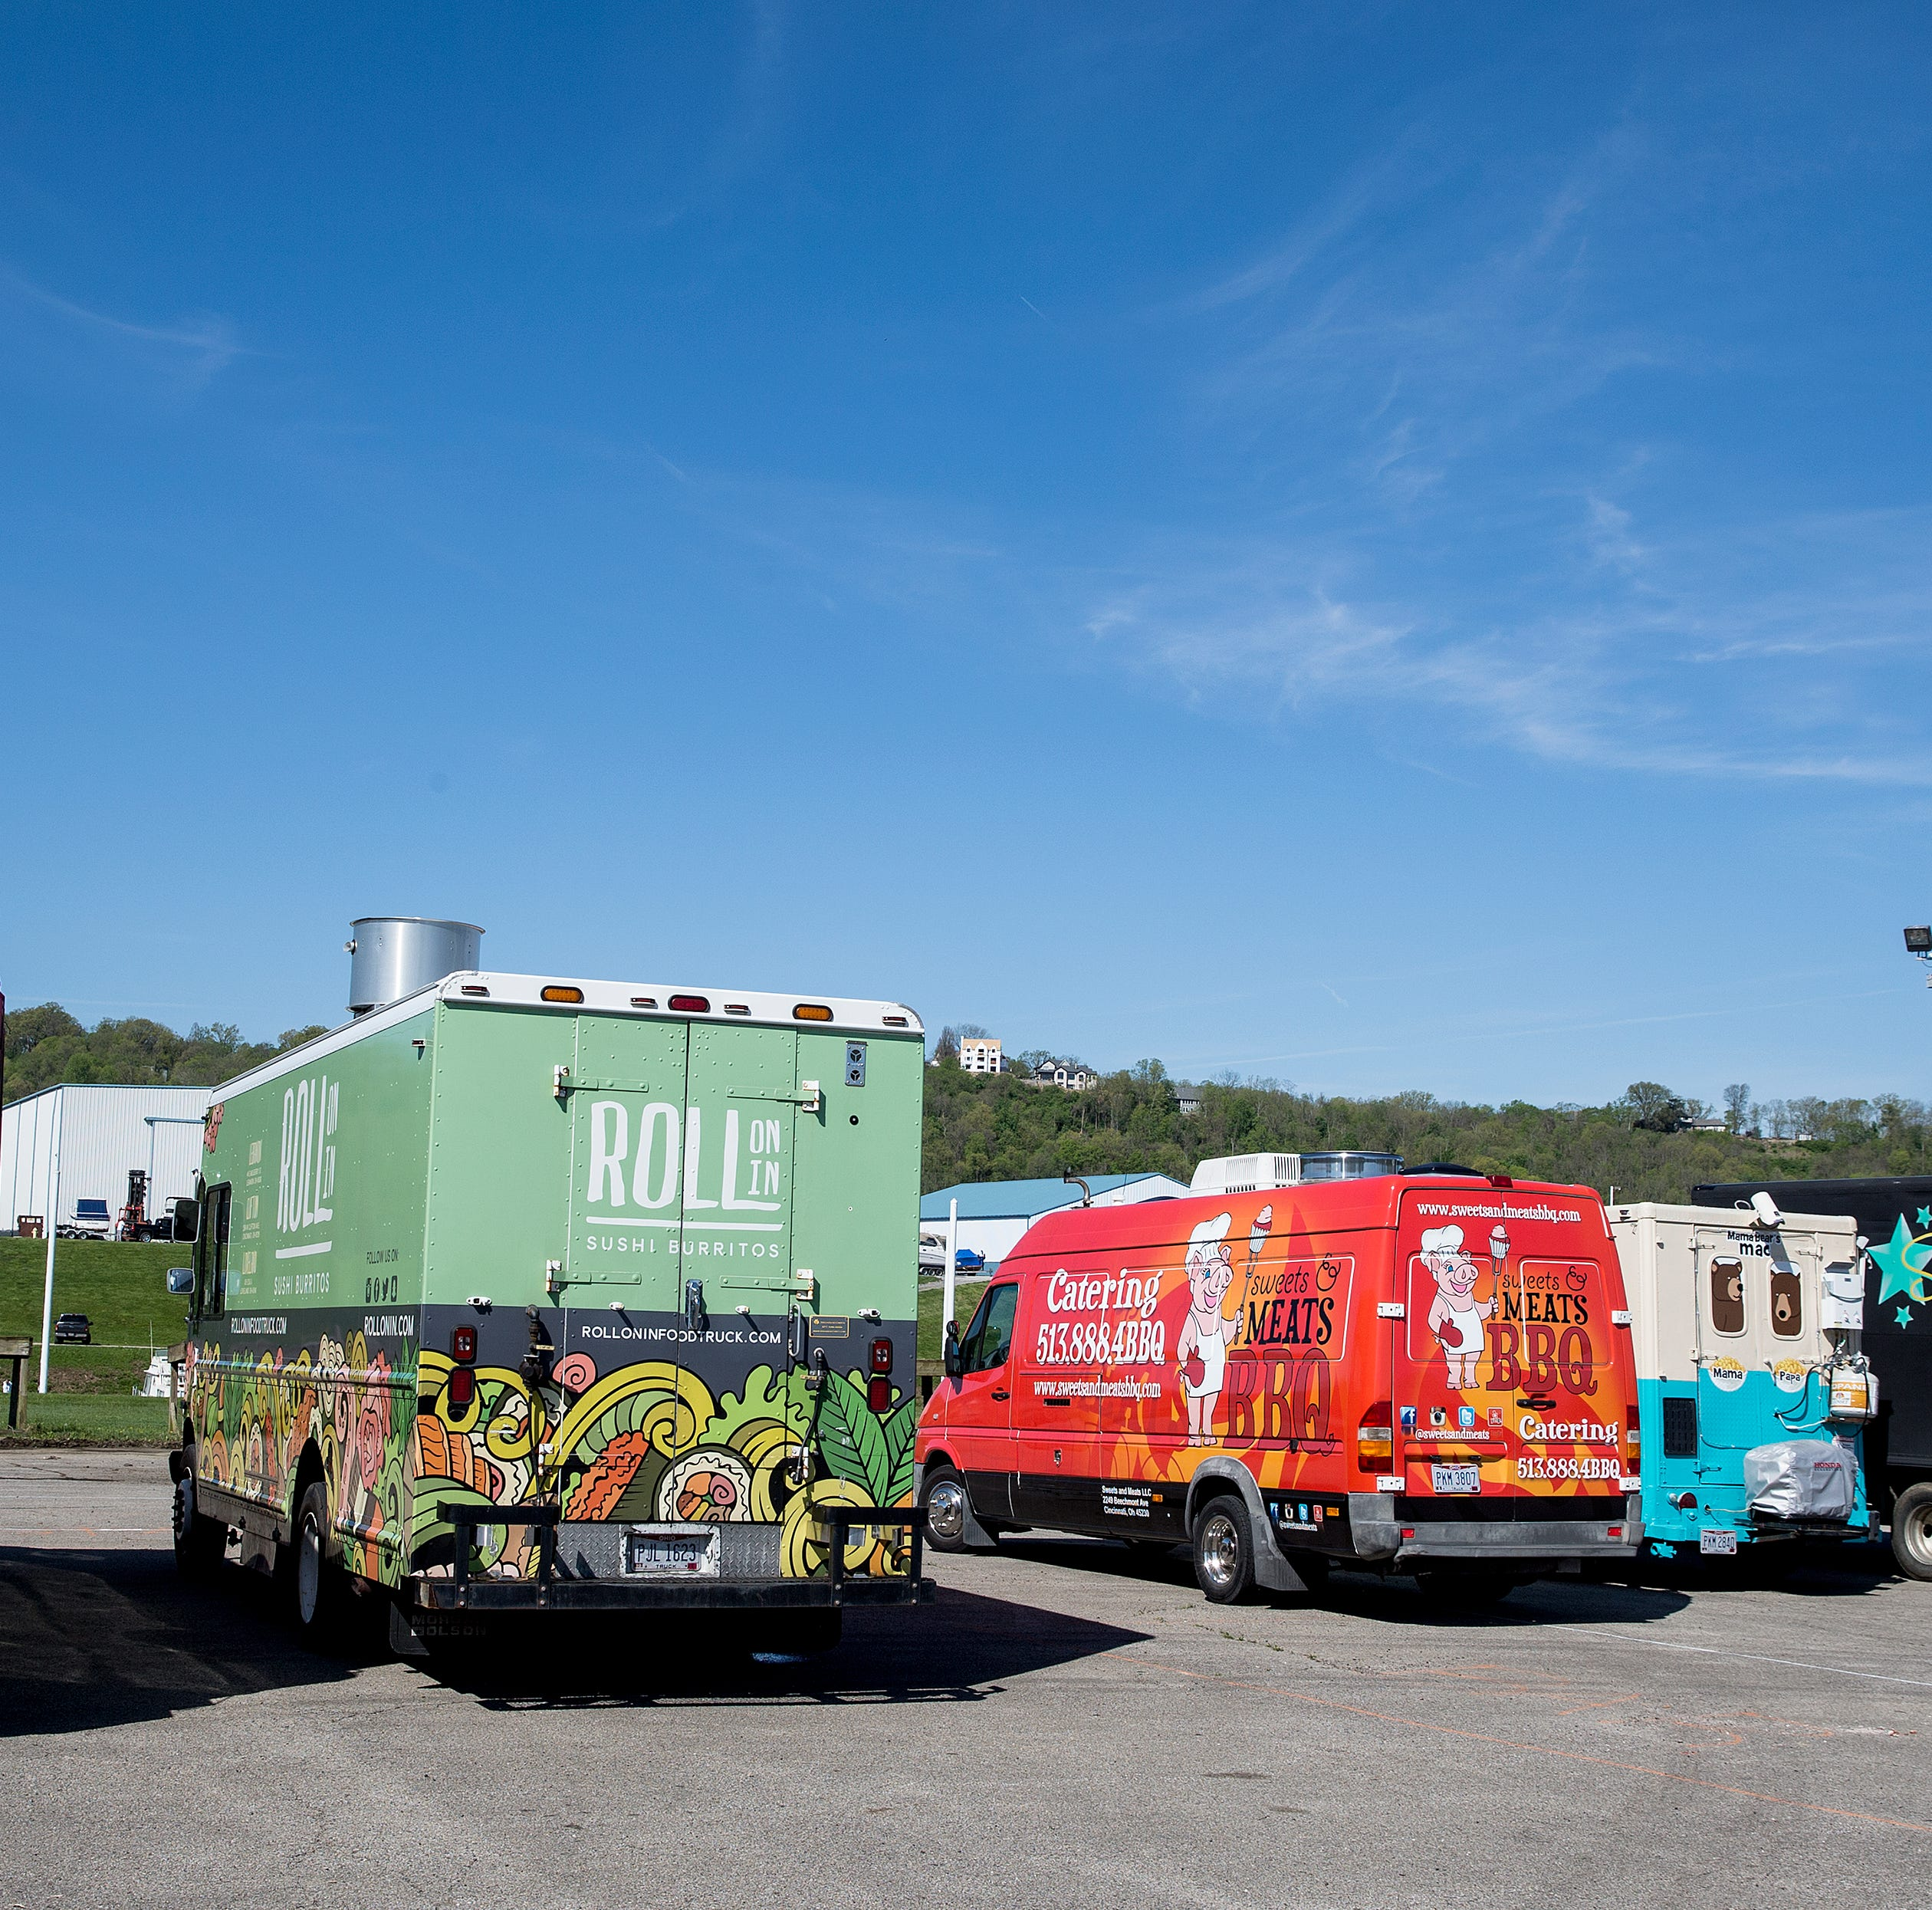 New food truck park will help Cincinnati show it's 'vibrant, hip and cool'